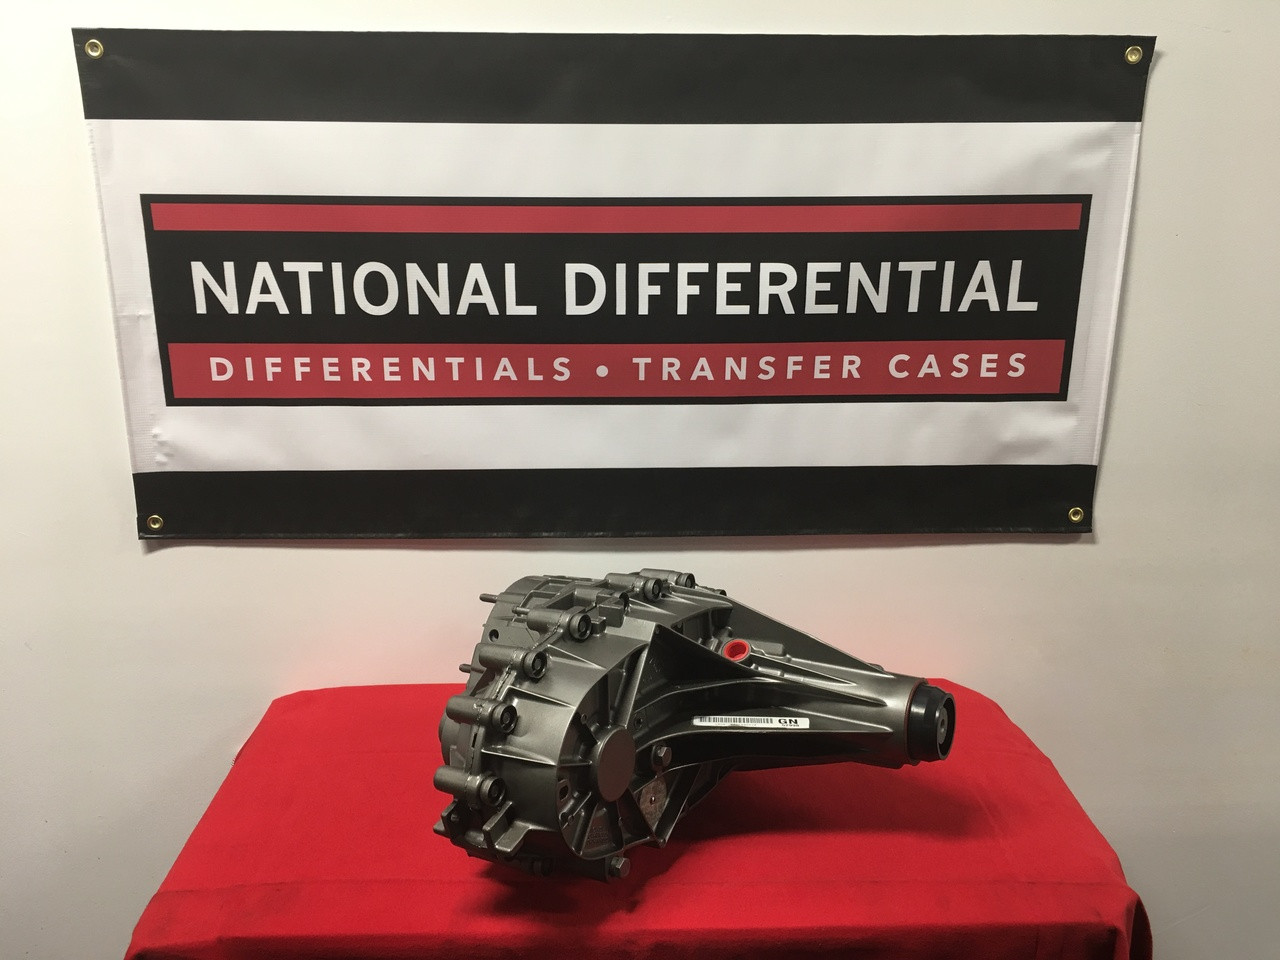 New Process NP 263 Transfer Case for 1999, 2000, 2001, 2002, 2003, 2004, 2005 and 2006 Chevrolet or GMC 2500 and 2500 Pickup Trucks